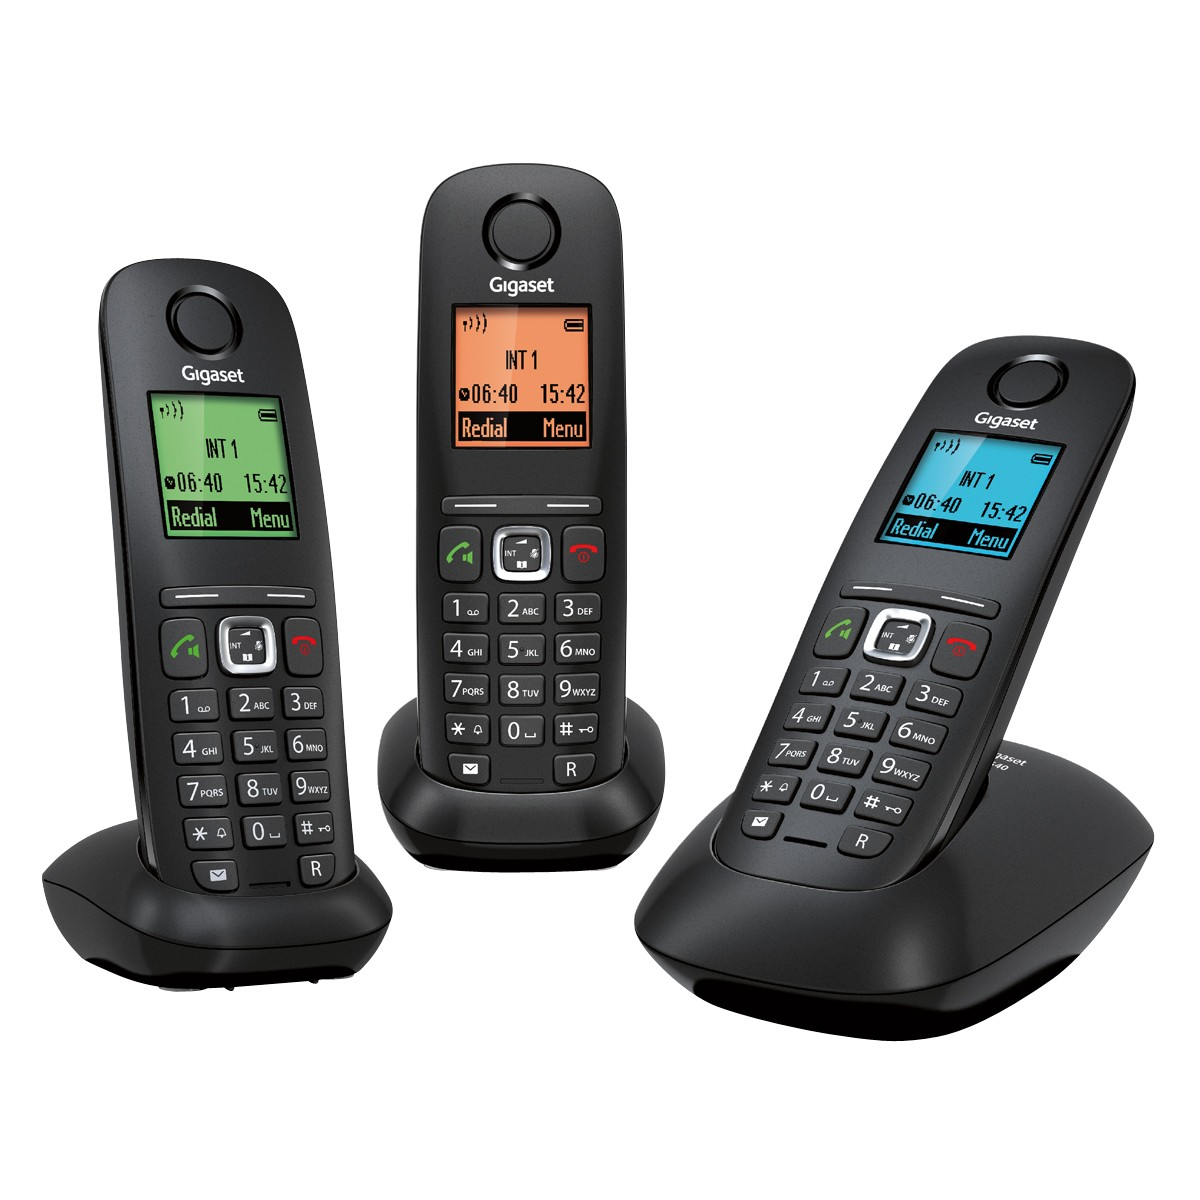 a540 trio black gigaset mobile phone. Black Bedroom Furniture Sets. Home Design Ideas